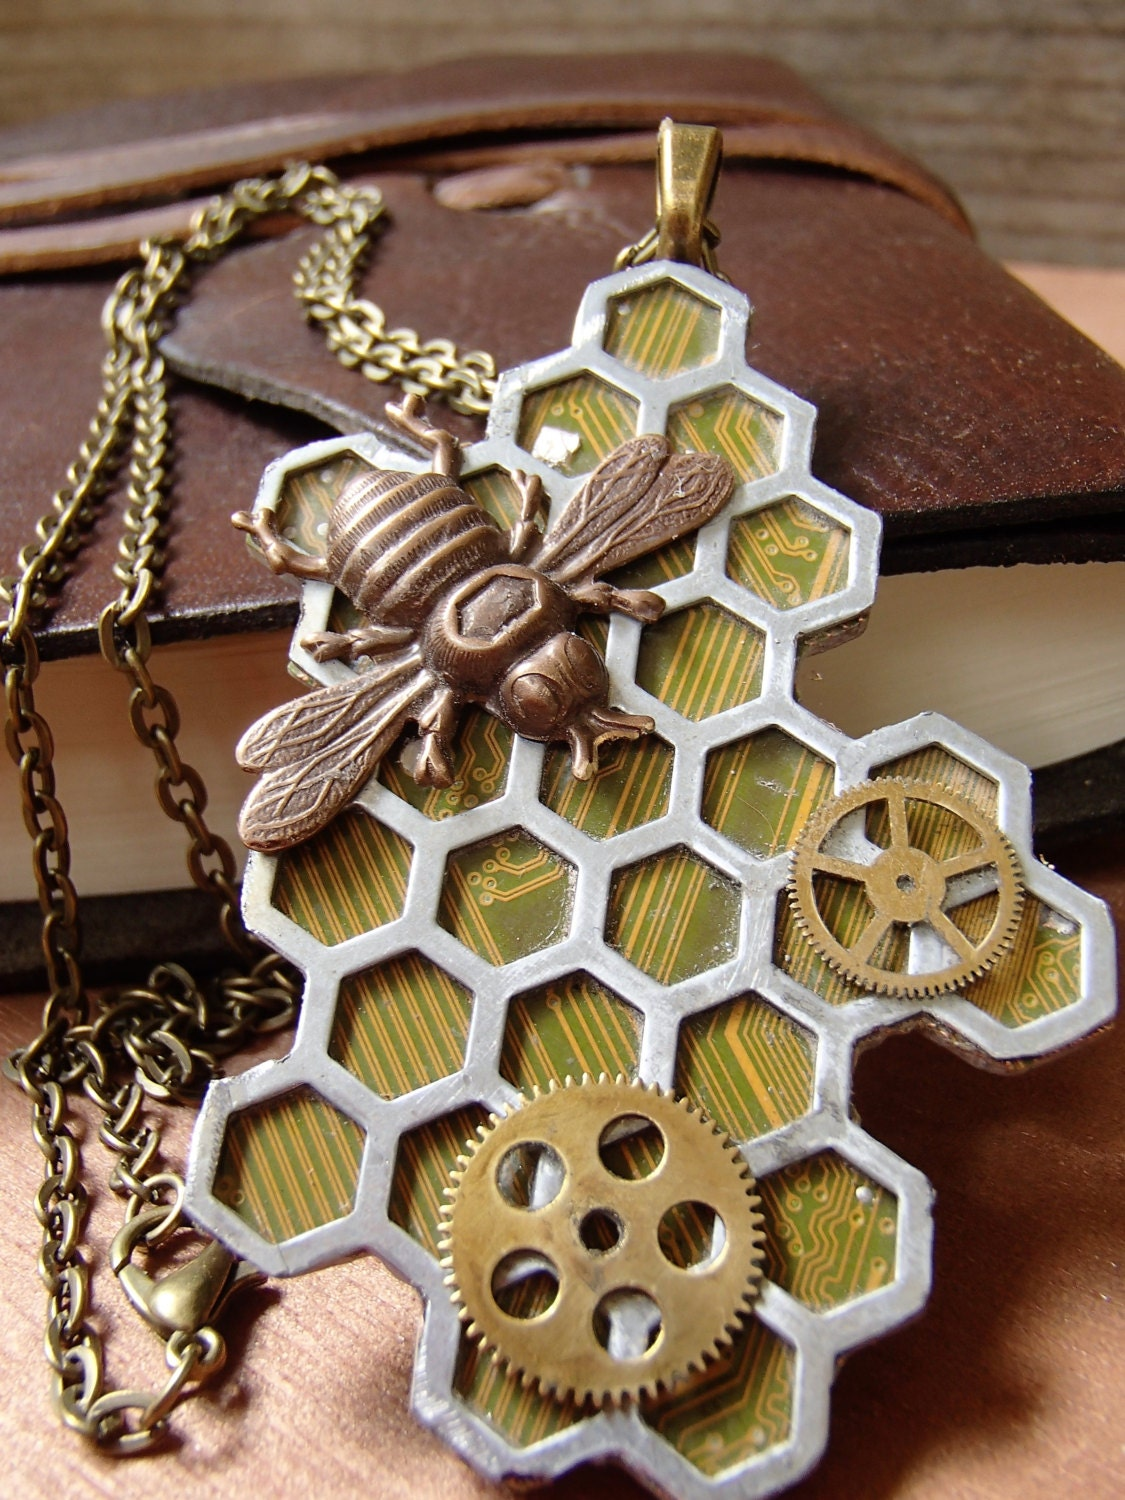 Recycled Circuit Board Clock Ask Answer Wiring Diagram Recycledcircuitboardlamp Honeycomb Bee Steampunk Gear And Circuitboard Pendant Piece Schutt Lamps